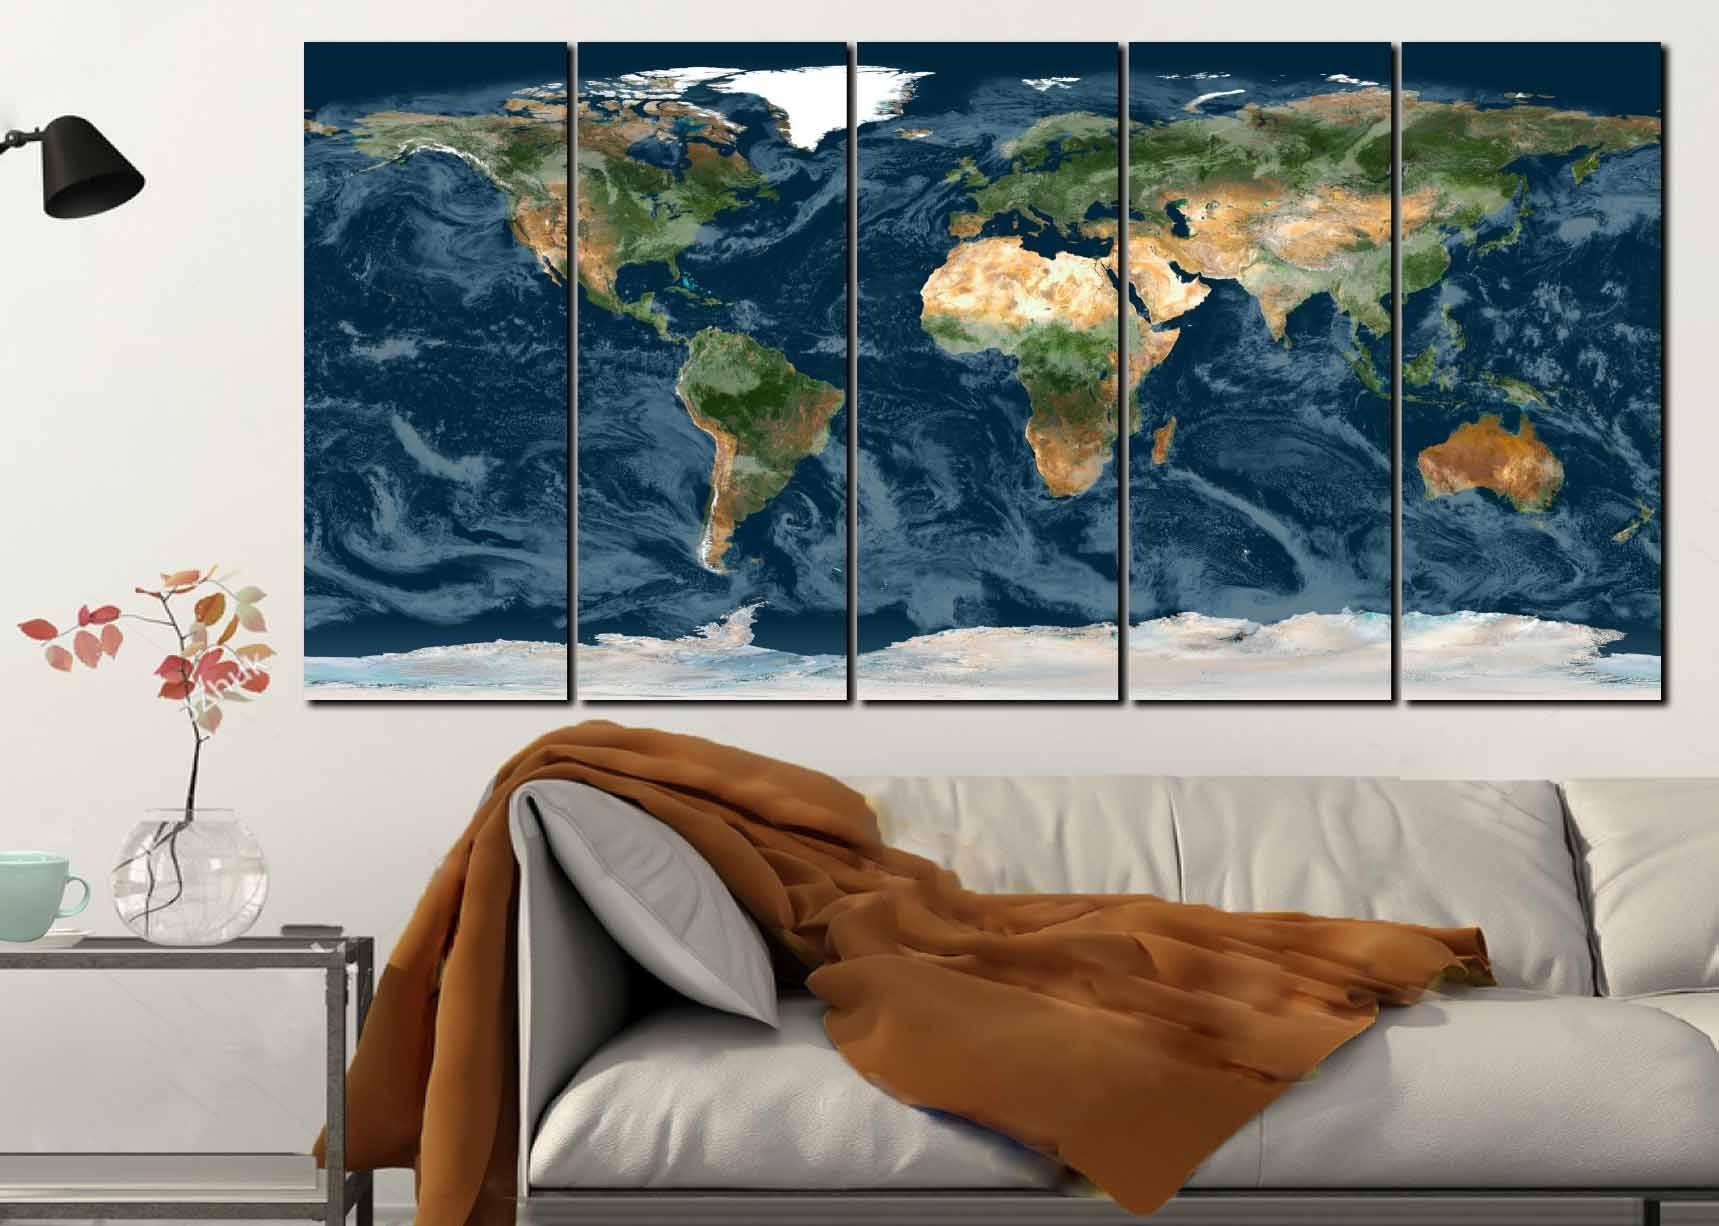 World map wall arttopographical world maptopographical maplarge world map wall arttopographical world maptopographical maplarge world maplarge map artnavy blue world mapworld map canvasmap print gumiabroncs Image collections